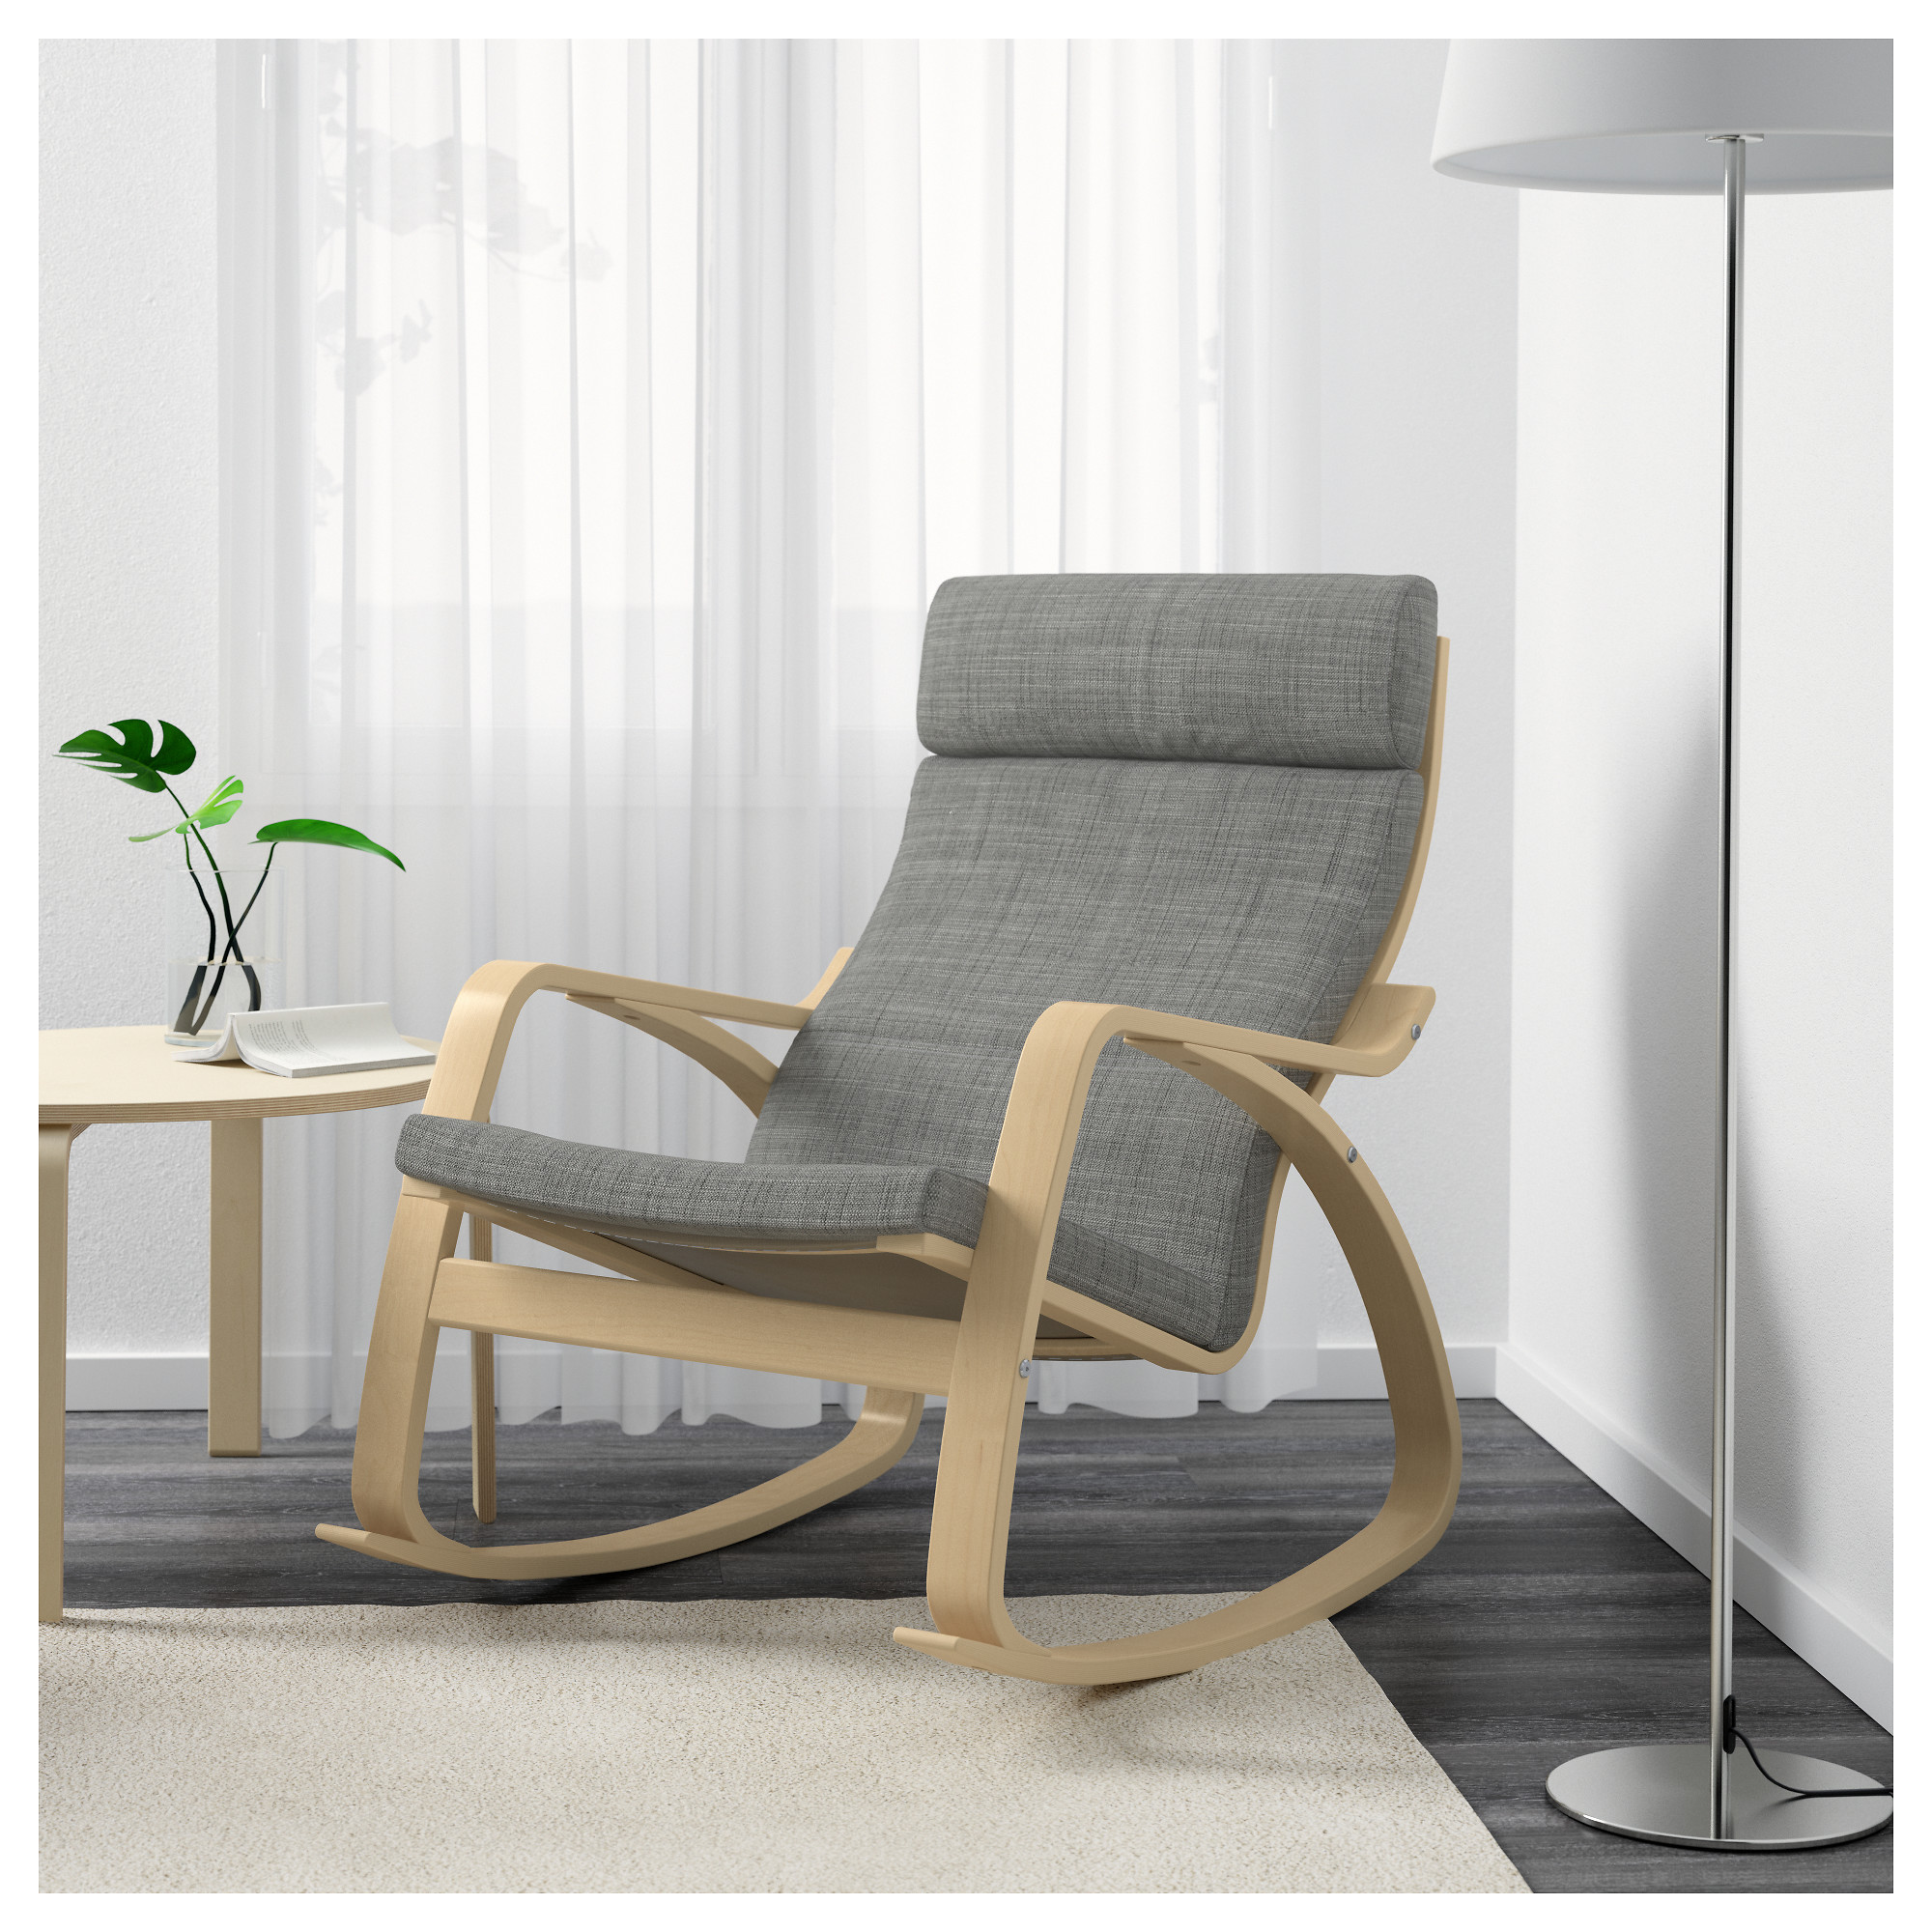 How to make a simple wooden rocking chair - How To Make A Simple Wooden Rocking Chair 51